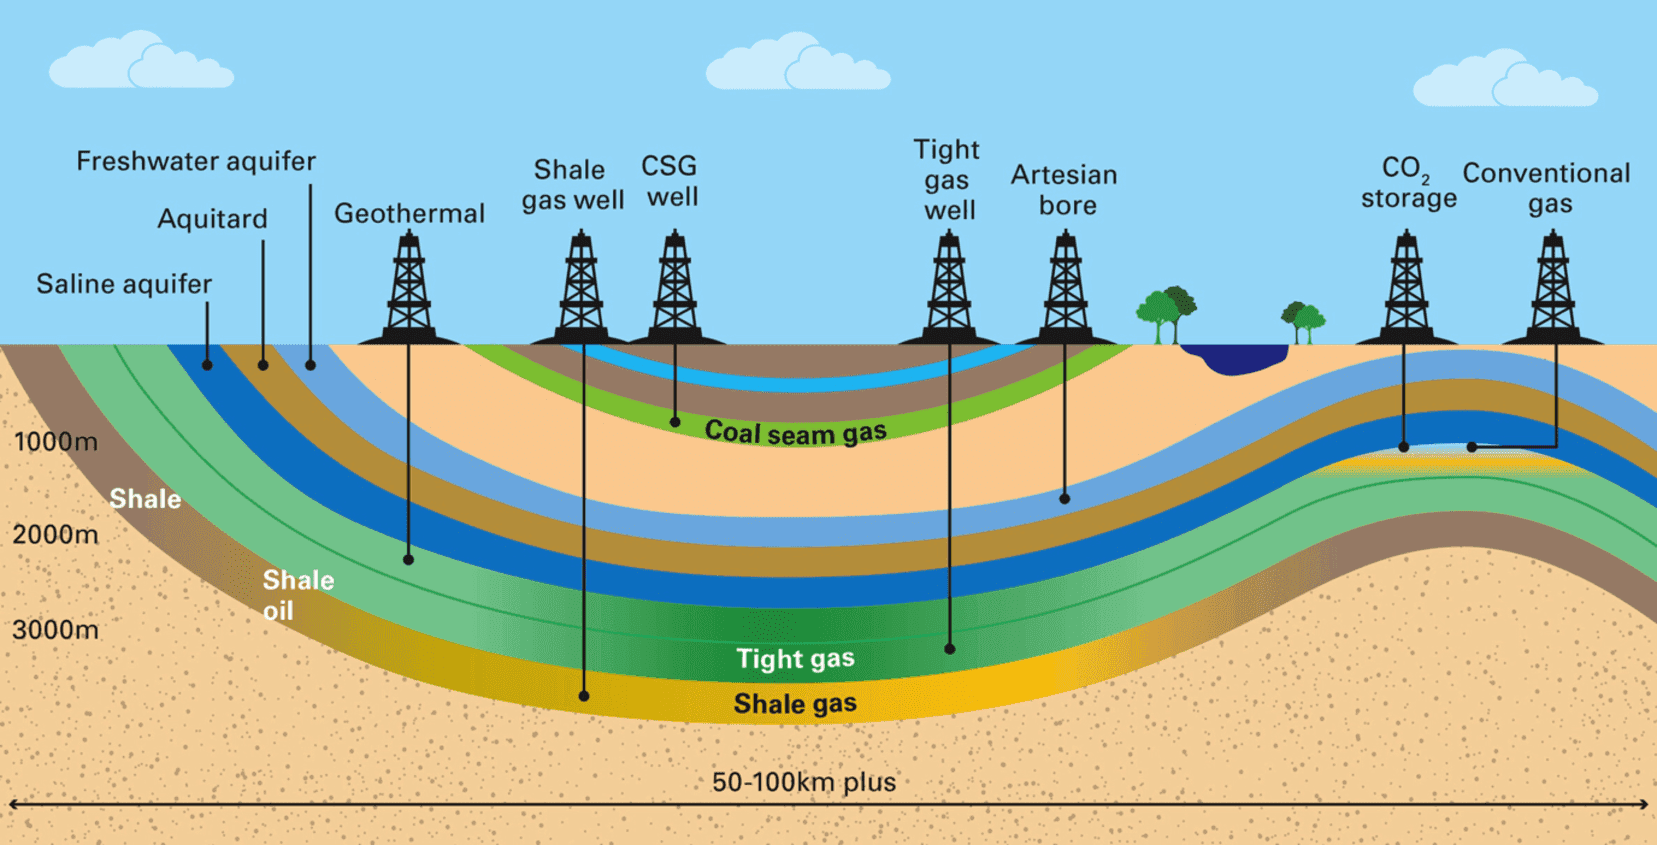 https://www.usgs.gov/centers/cersc/science/united-states-assessments-undiscovered-oil-and-gas-resources?qt-science_center_objects=0#qt-science_center_objects